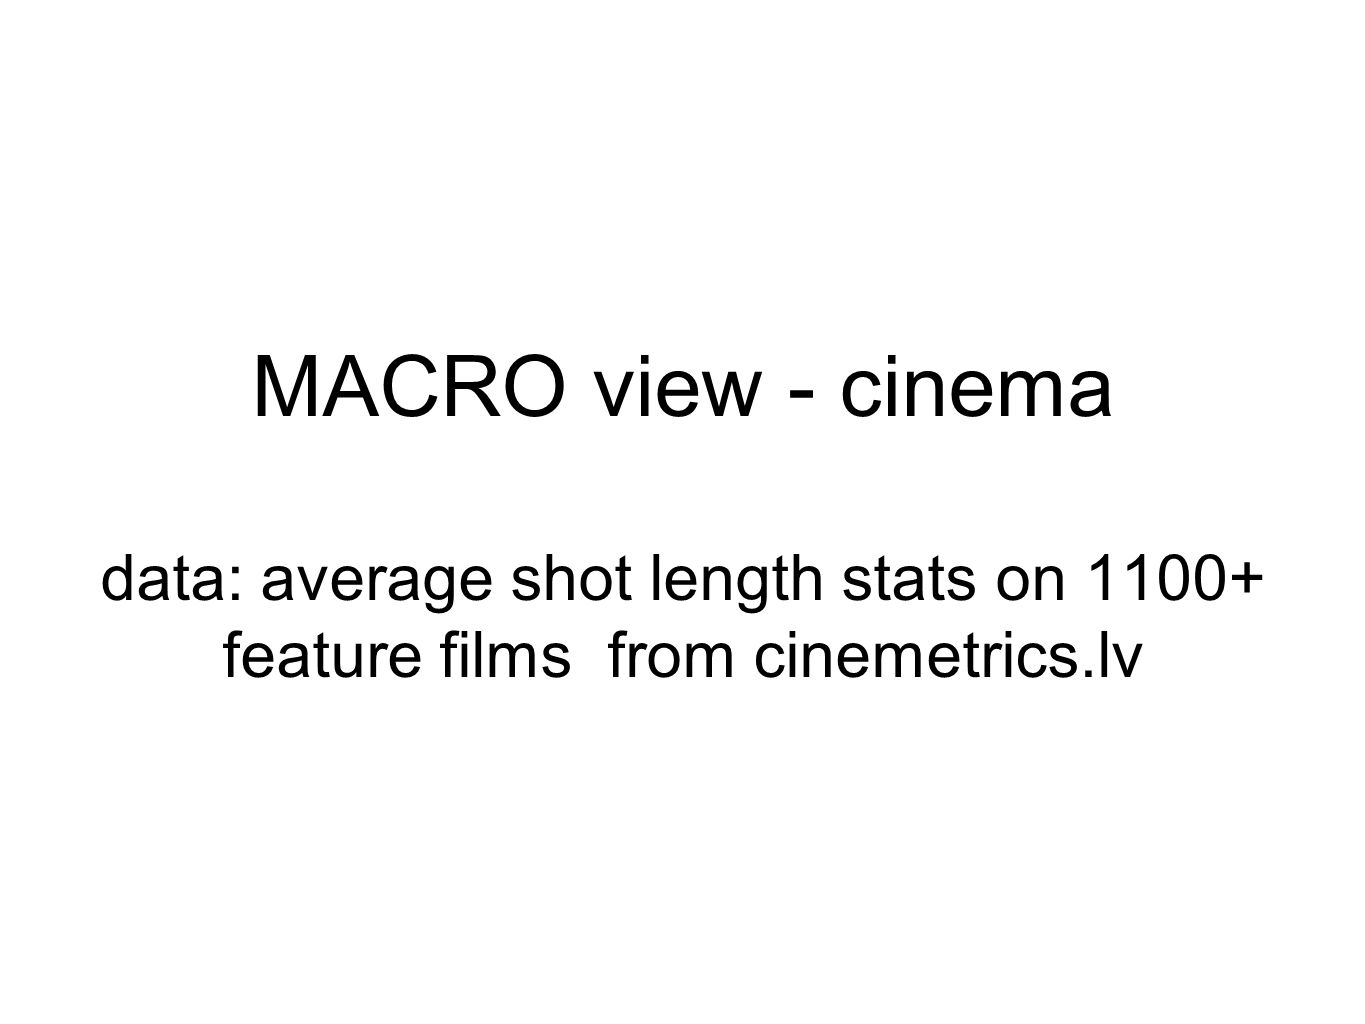 MACRO view - cinema data: average shot length stats on 1100+ feature films from cinemetrics.lv